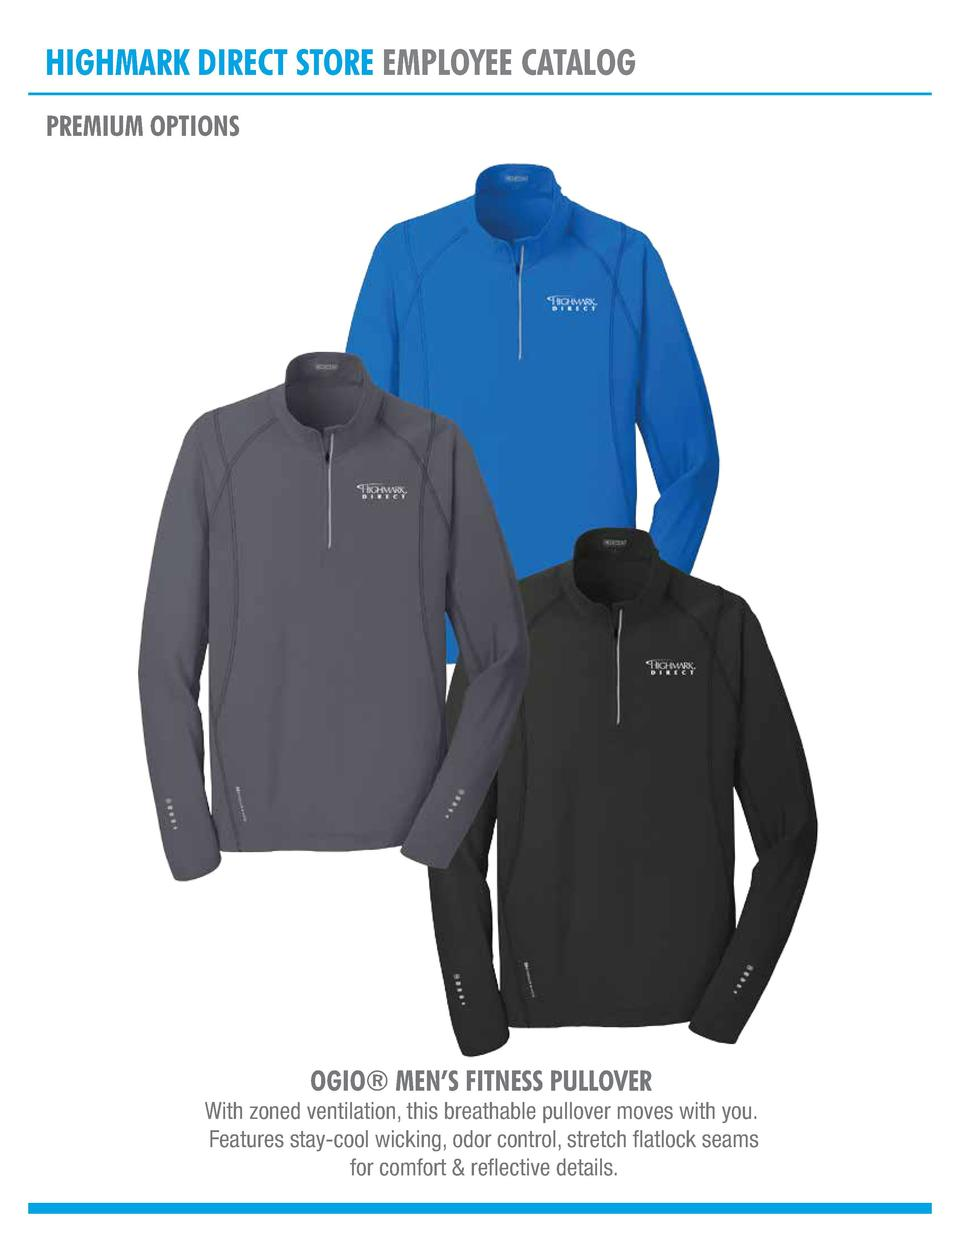 HIGHMARK DIRECT STORE EMPLOYEE CATALOG PREMIUM OPTIONS  OGIO   MEN   S FITNESS PULLOVER  With zoned ventilation, this brea...